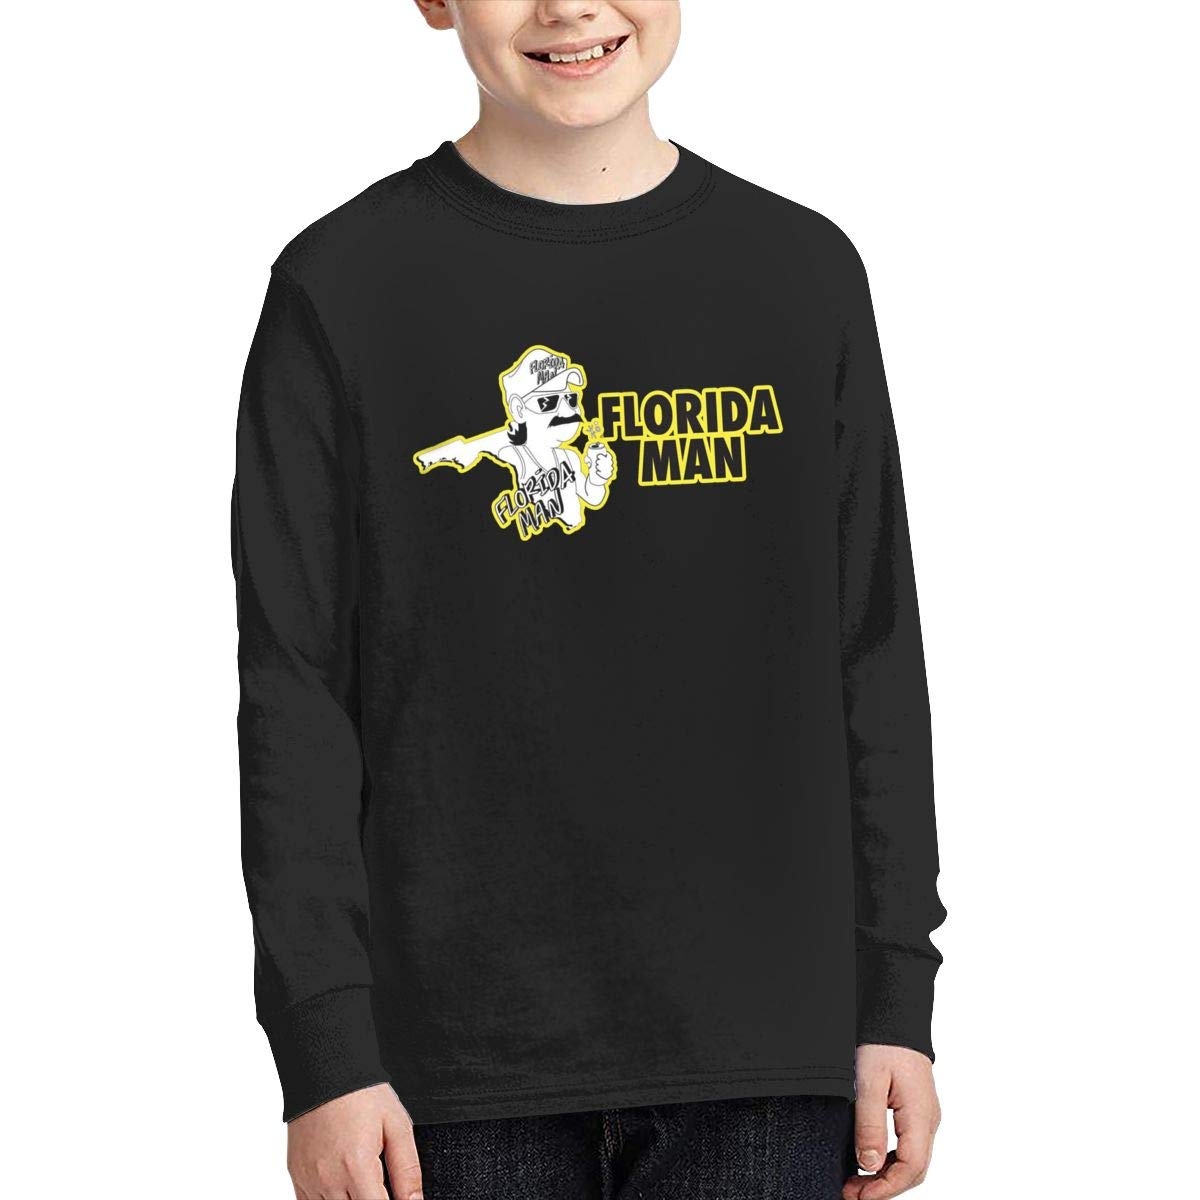 Florida Man Youth Long Sleeve Moisture Wicking Athletic T Shirts Casual Tee Graphic Tops for Teen Boys Girls